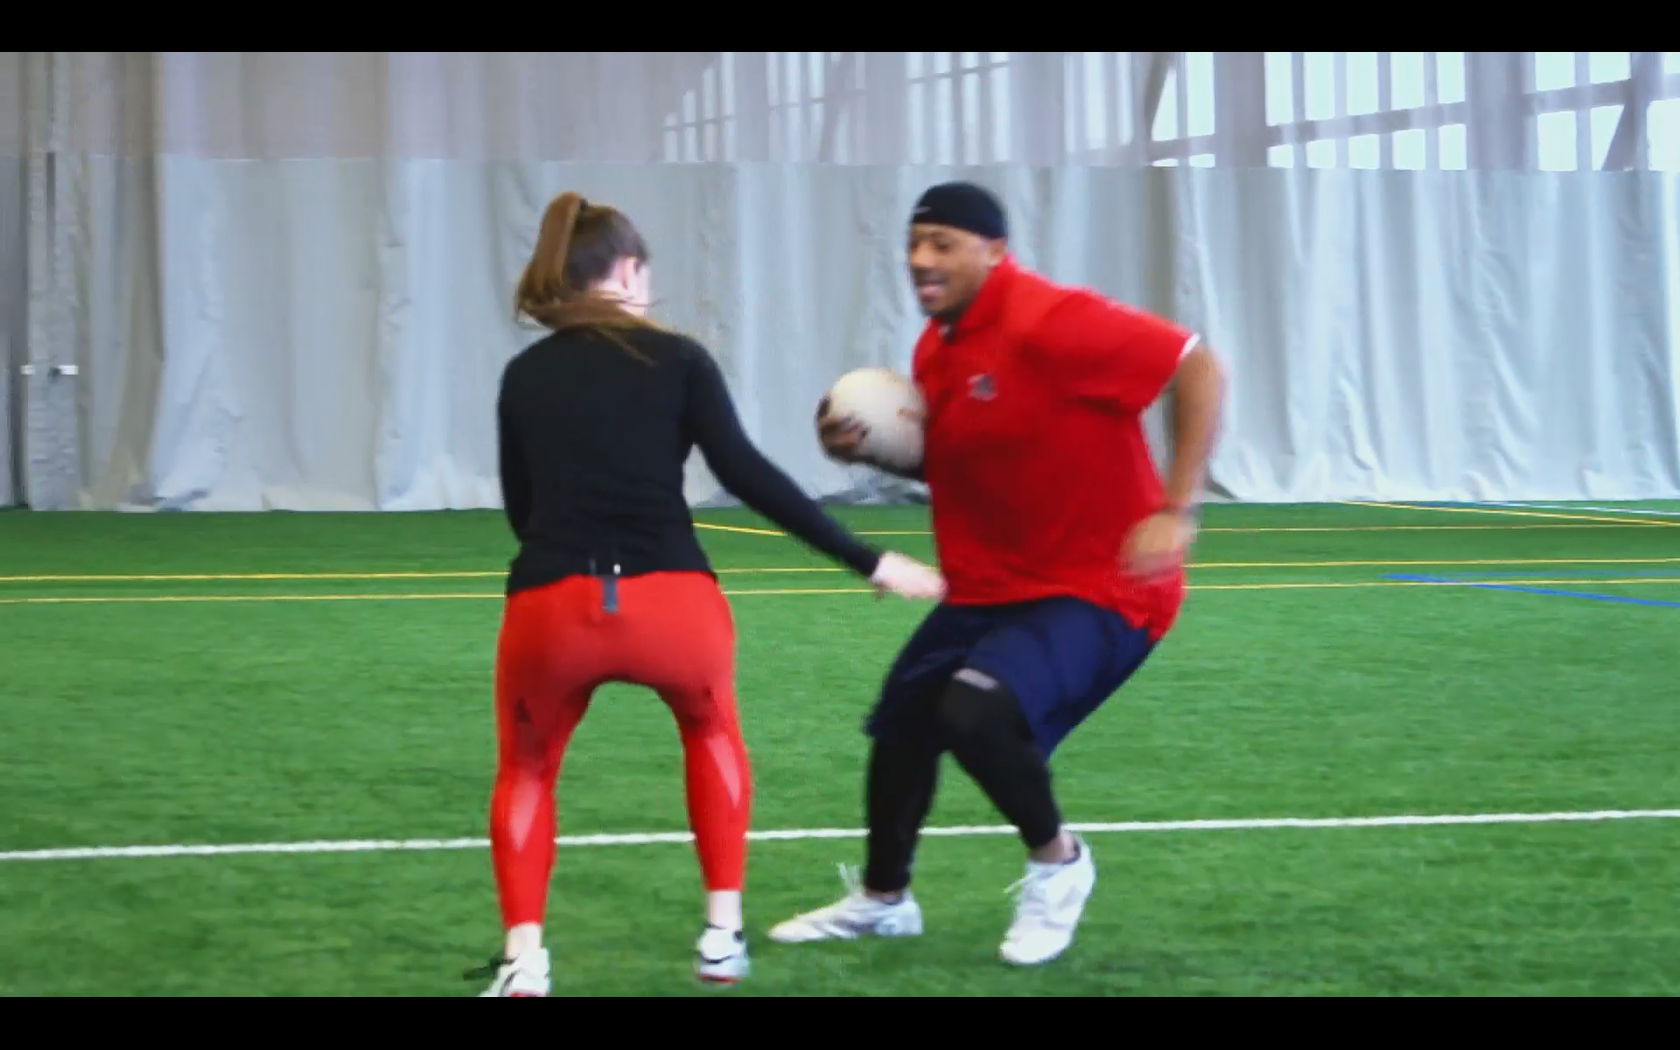 John Bowman plays rugby with the best female player in the world!